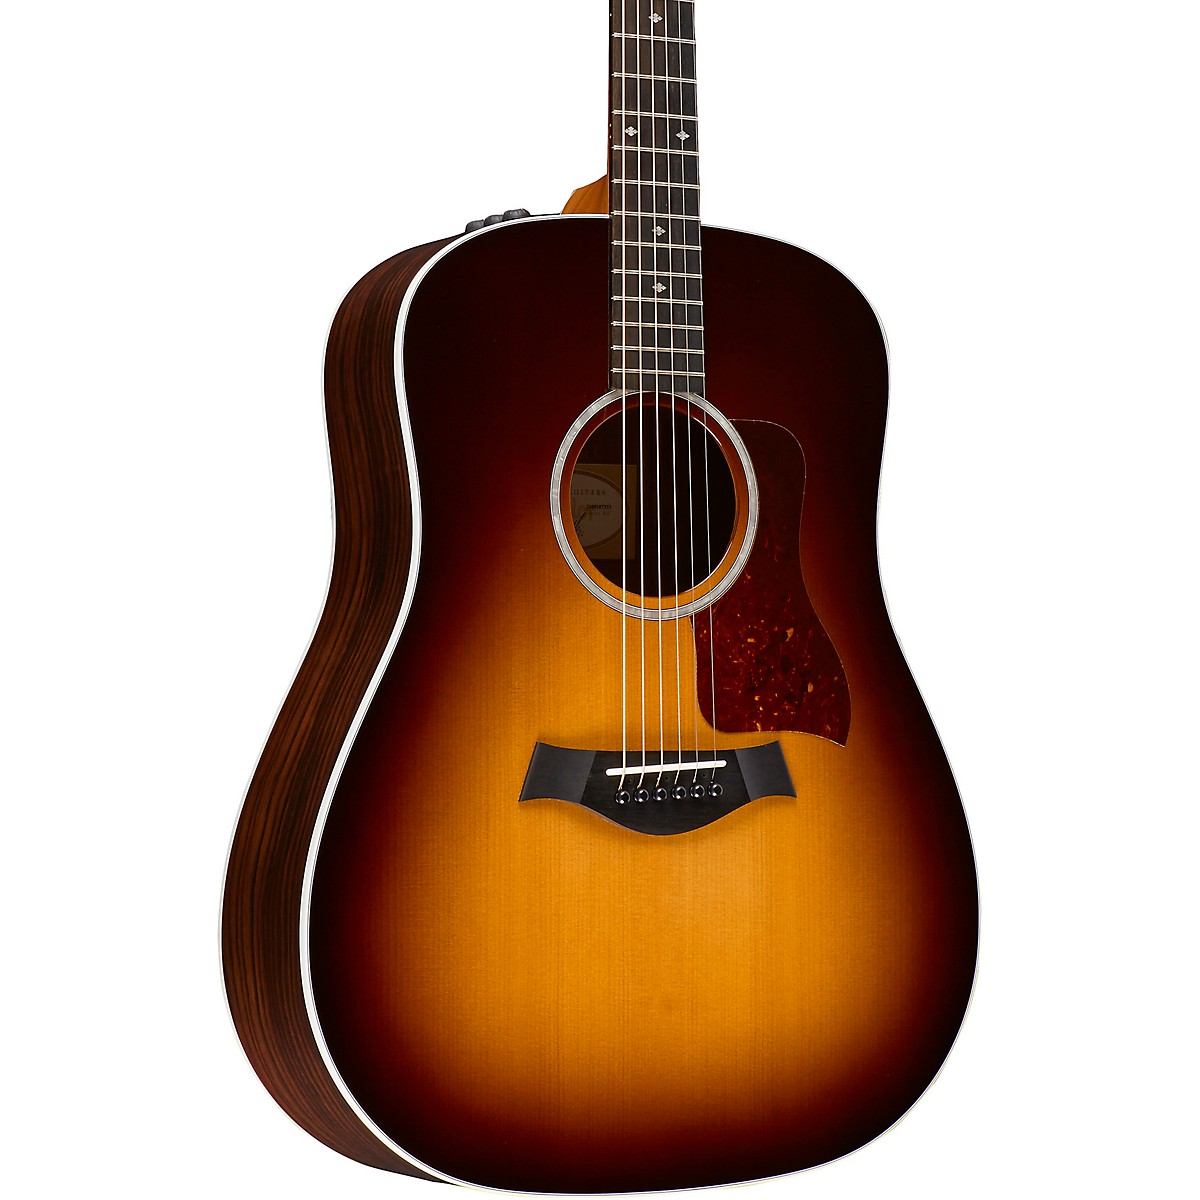 Taylor 210e Deluxe Dreadnought Acoustic-Electric Guitar